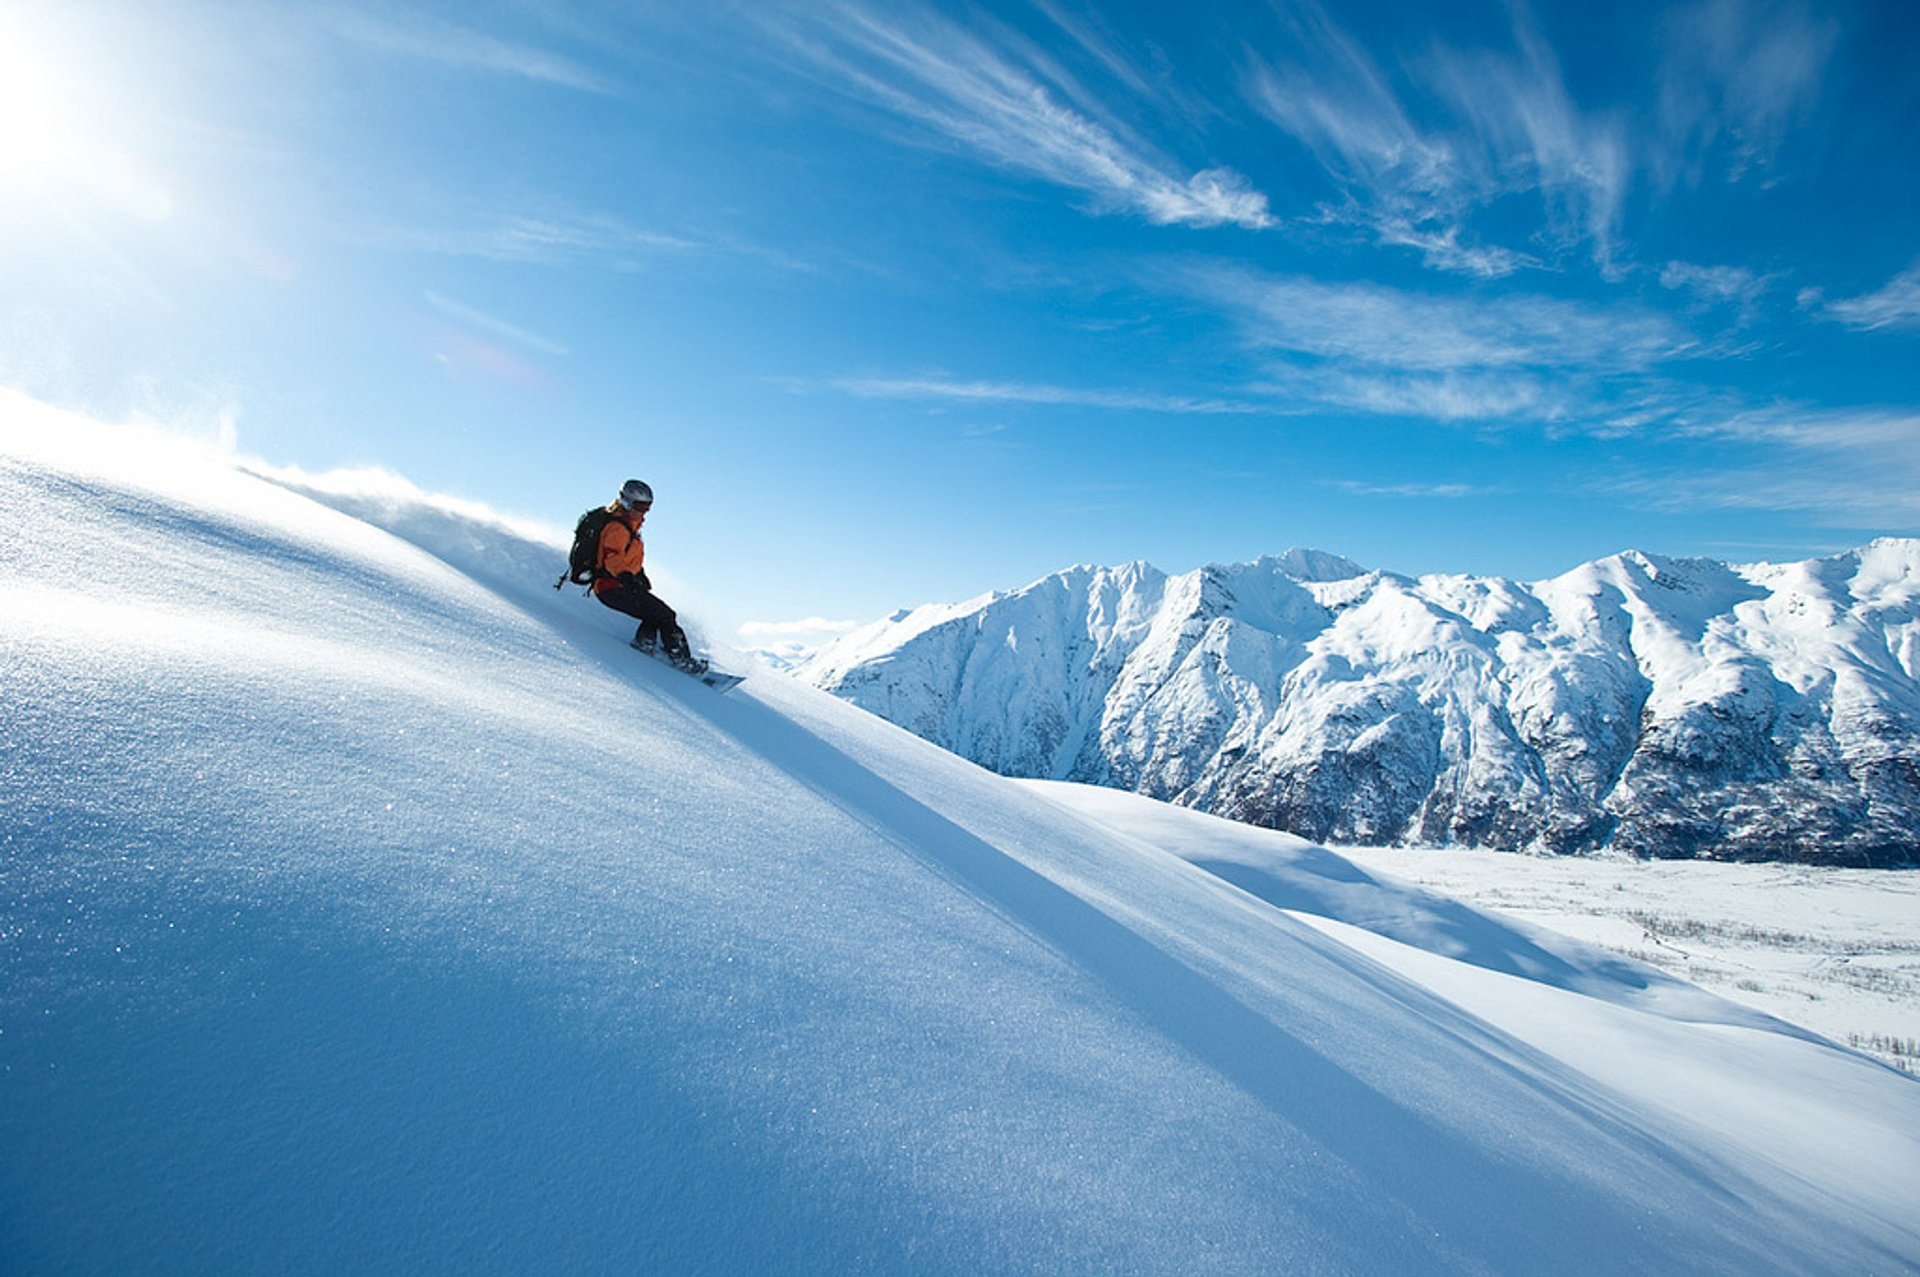 Skiing and Snowboarding in Alaska 2020 - Best Time